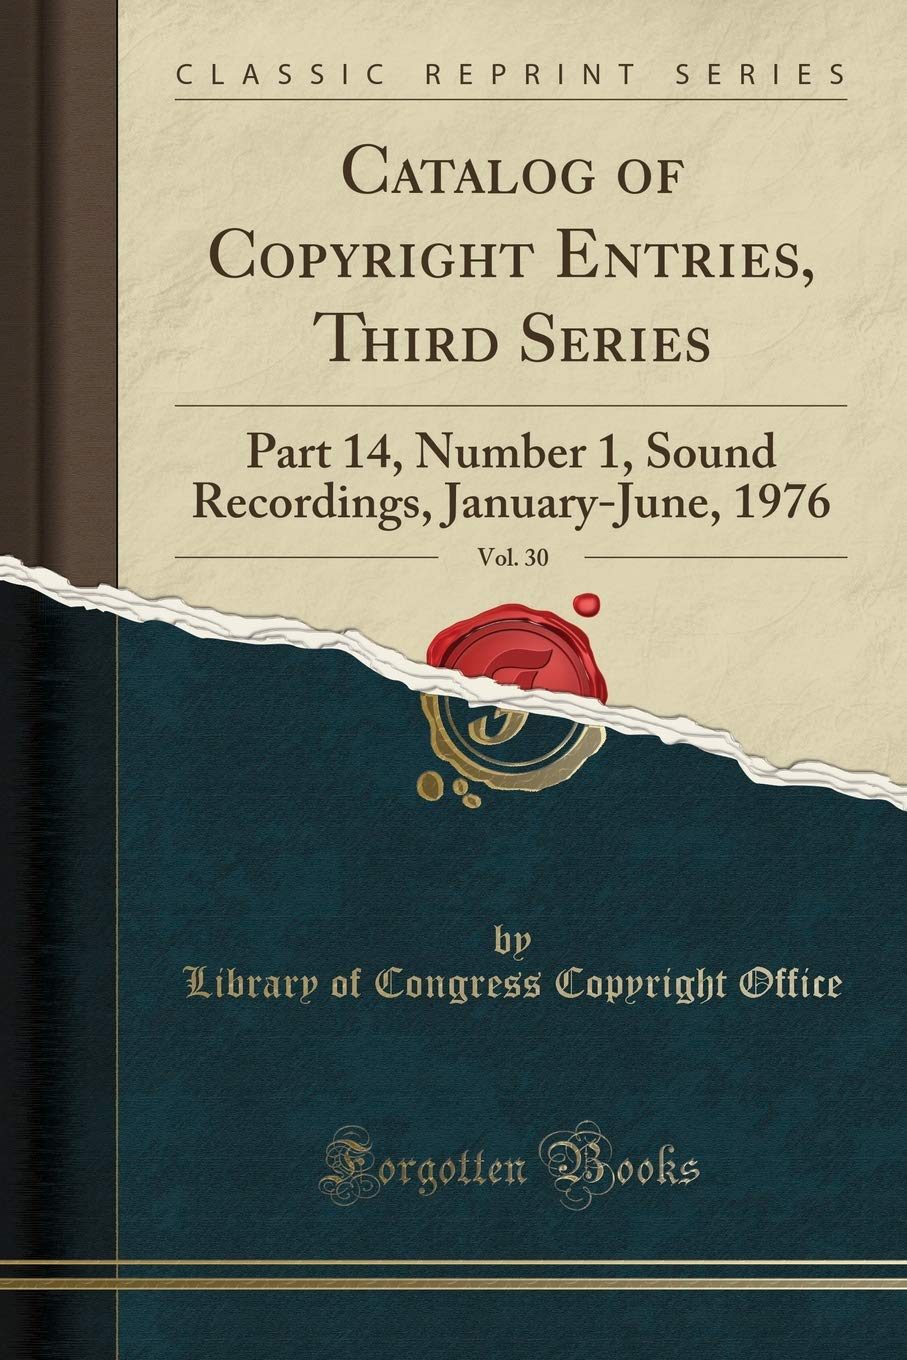 Catalog of Copyright Entries, Third Series, Vol. 30: Part 14, Number 1, Sound Recordings, January-June, 1976 (Classic Reprint) PDF